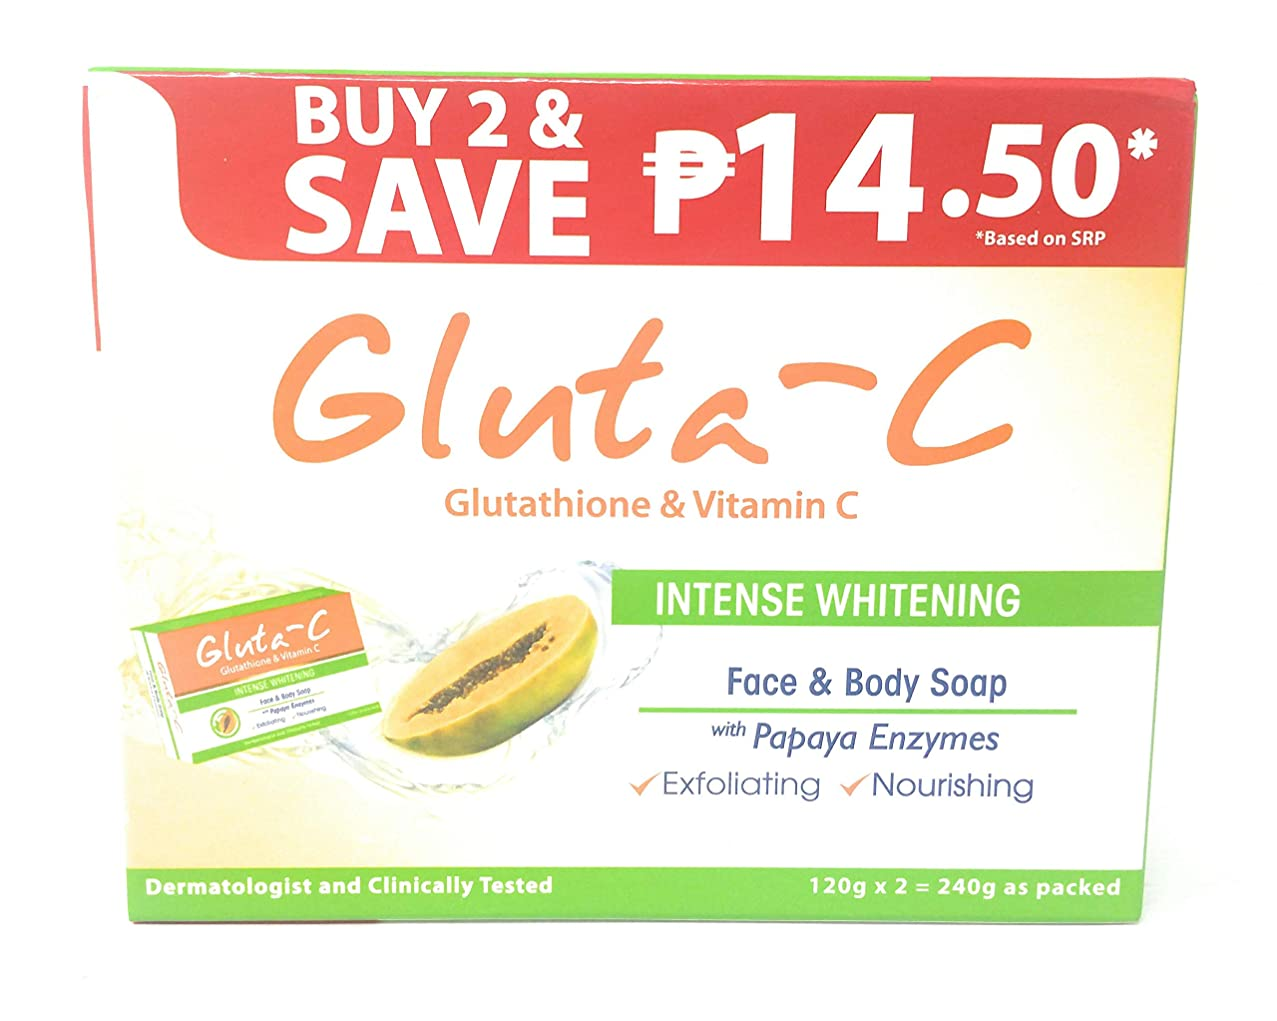 Gluta-C Intensive Whitening Face & Body Soap with Papaya Enzymes 240g